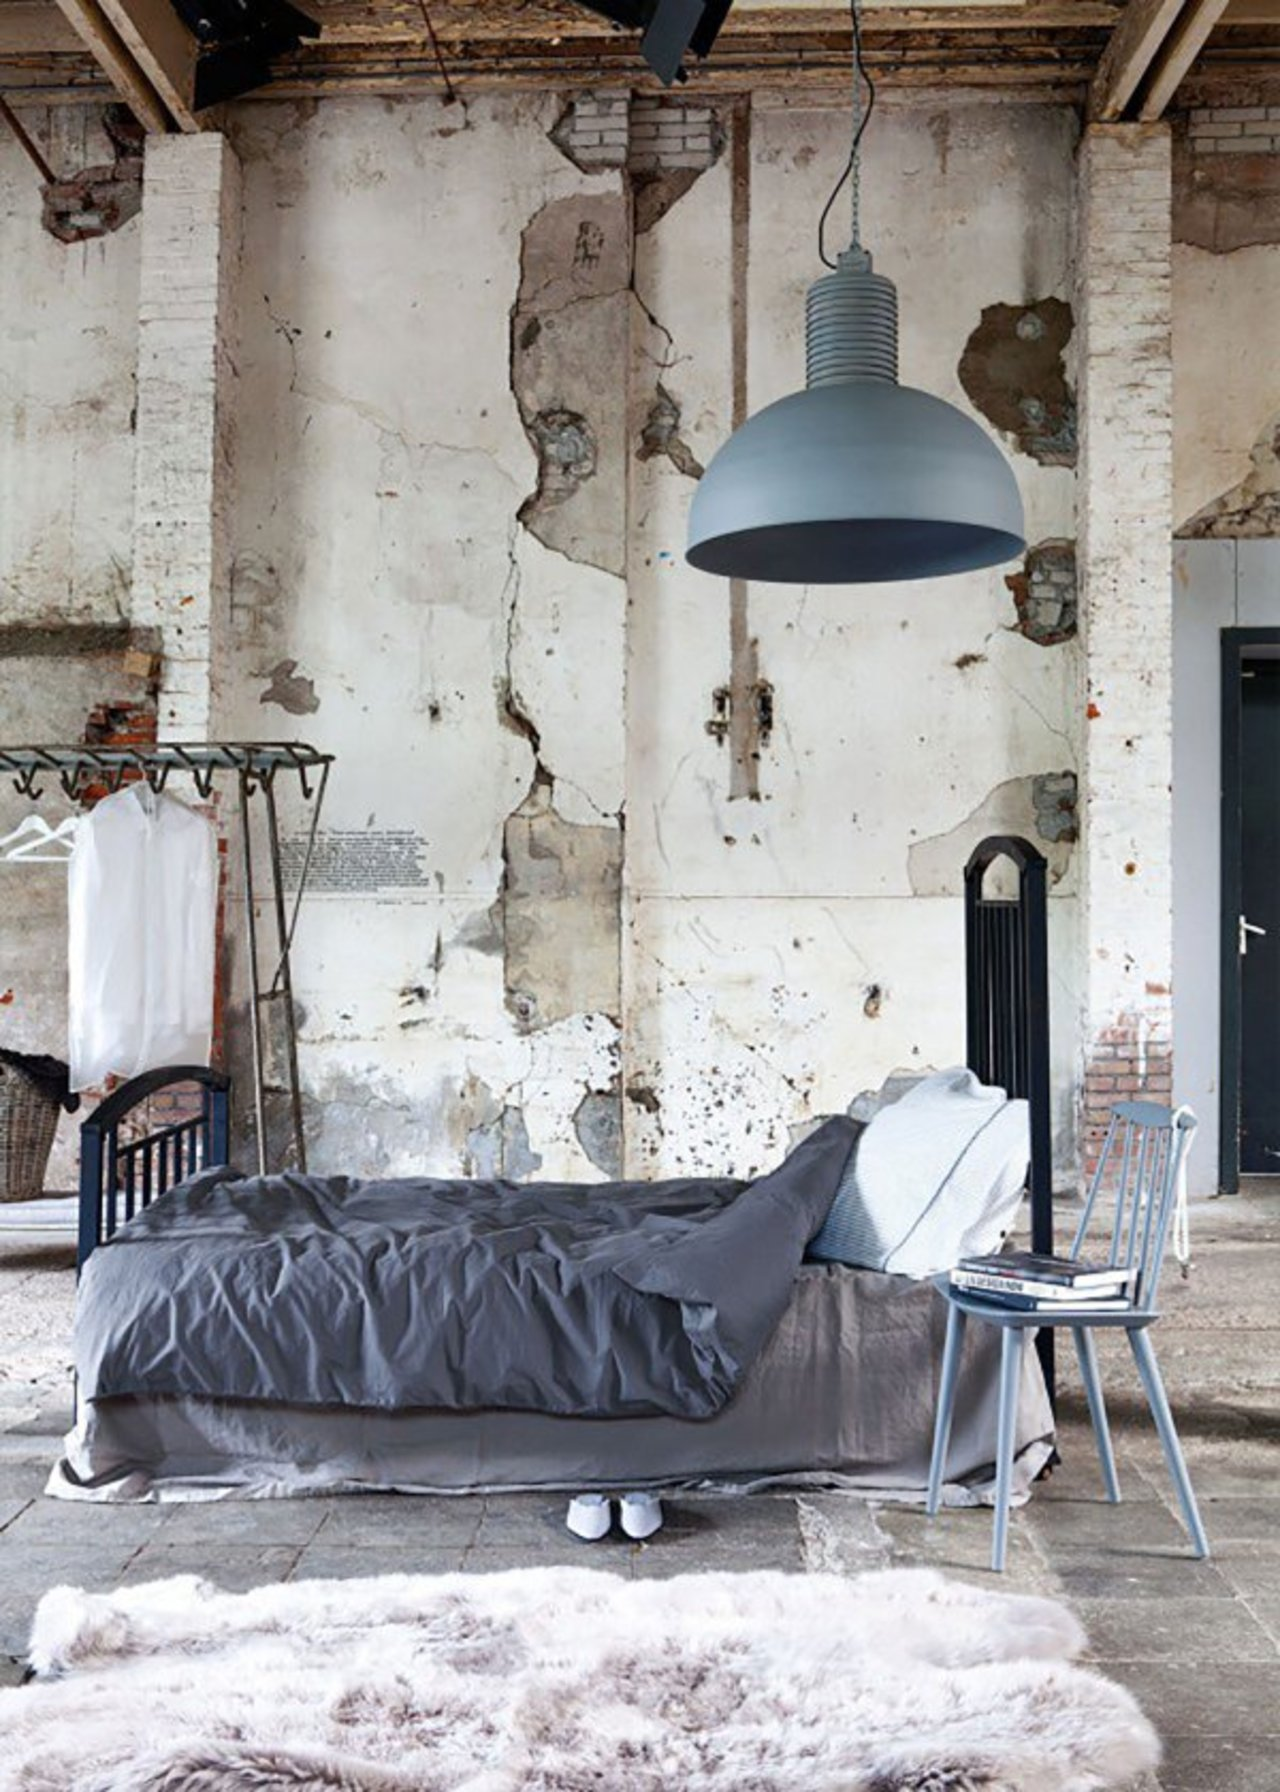 Intriguing Modern Sliding Door Design To Enhance Your Home Interior together with Invitation Borders And Frames moreover Geniale Interior Ideen Aus Kupferrohren moreover Creative Wall Clock Ideas together with Is Shabby Chic Furniture A Load Of Old Mess. on vintage style interior design